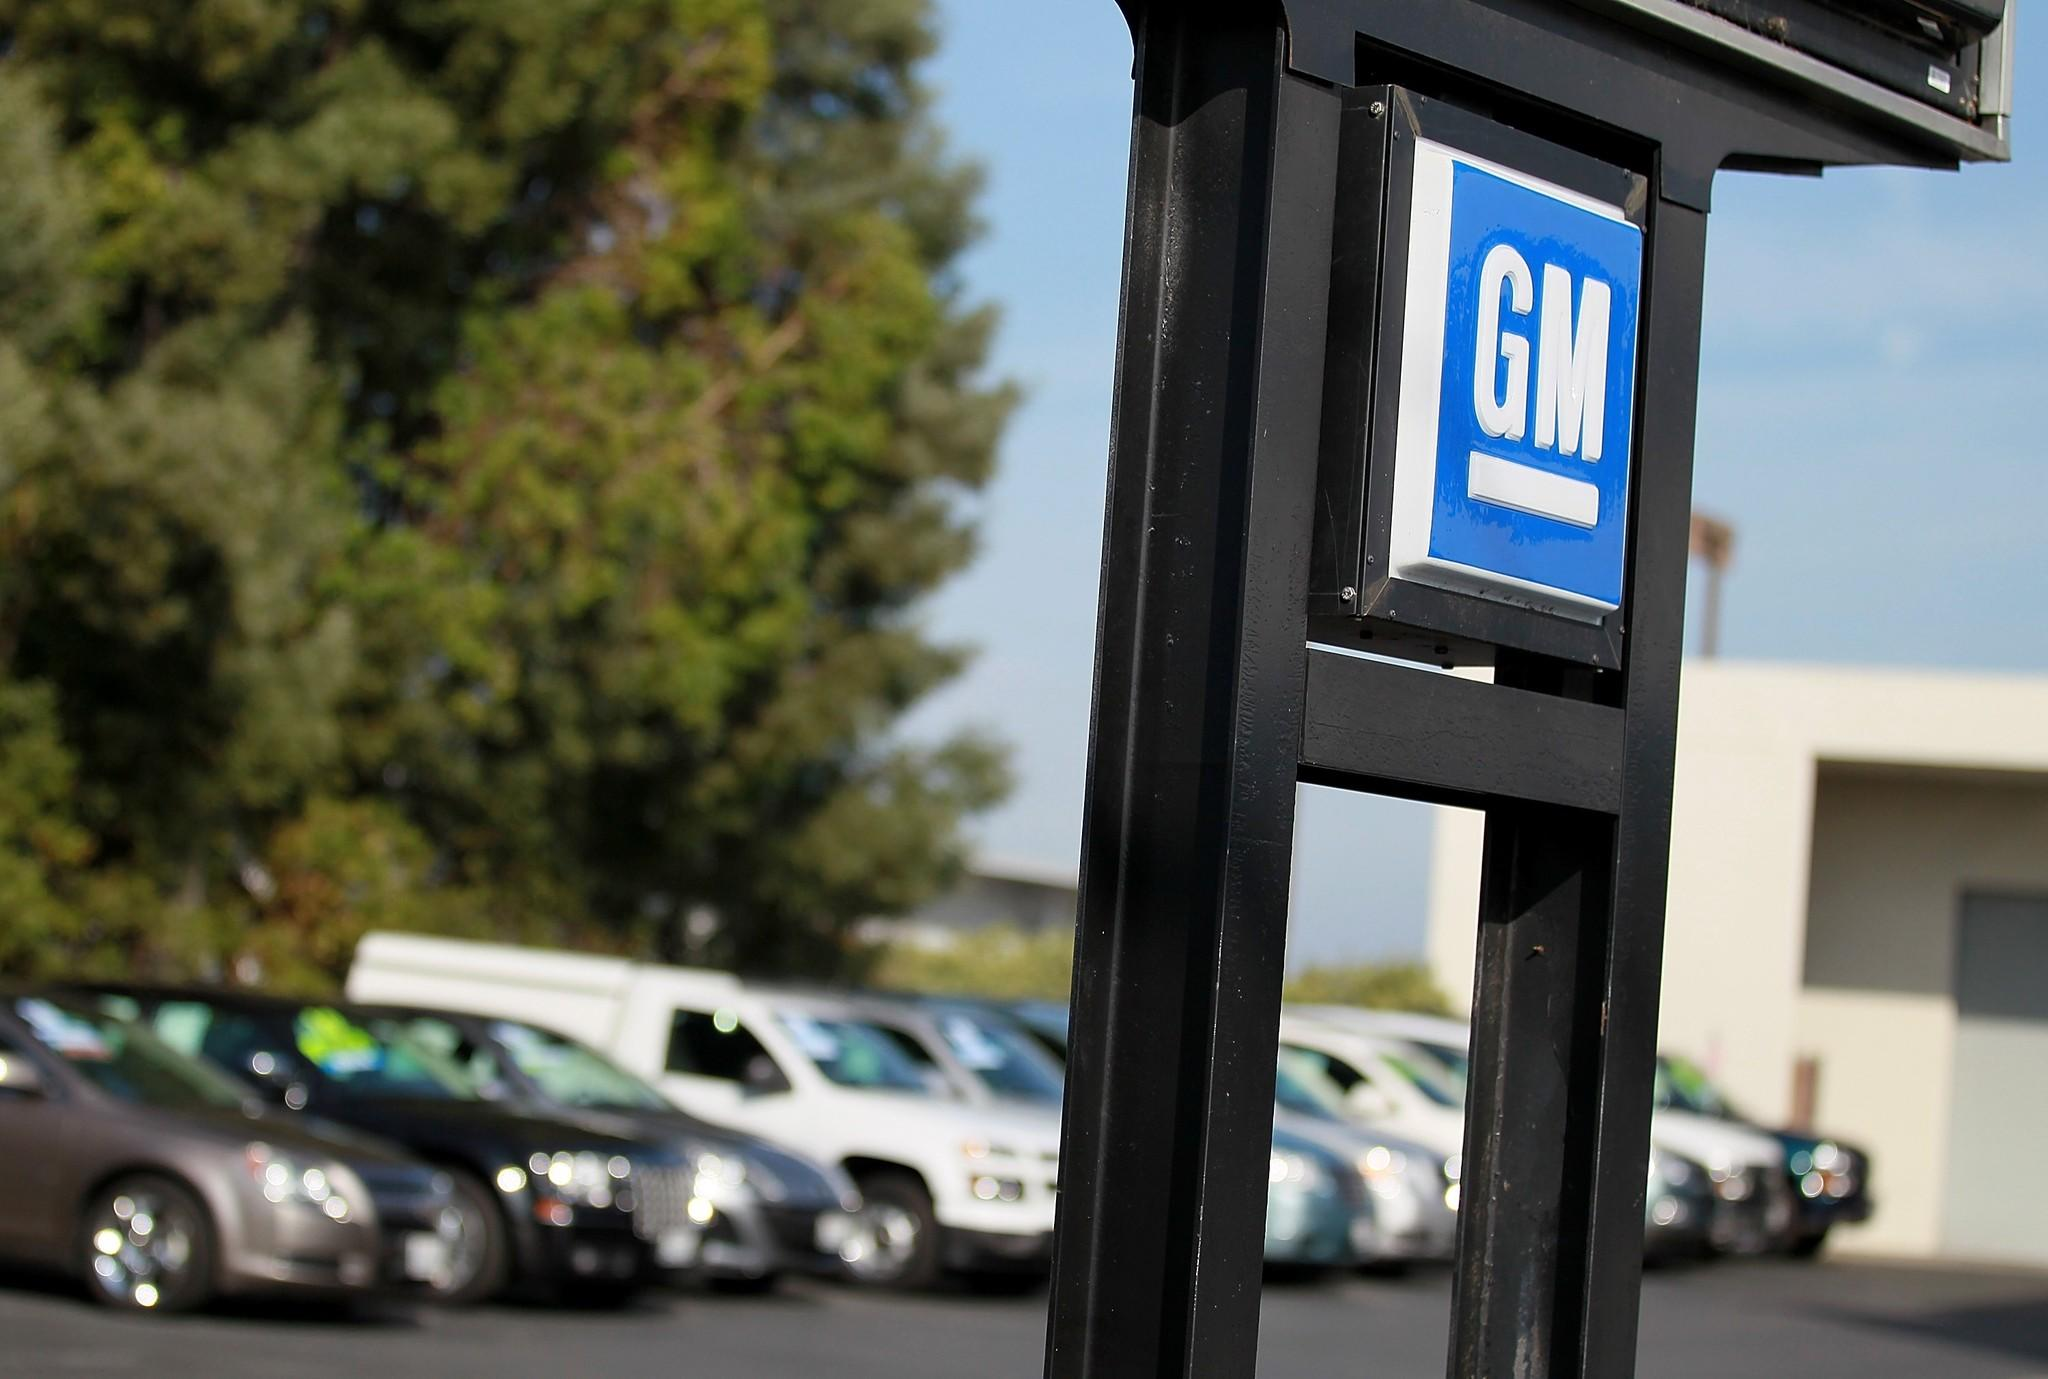 The General Motors logo is displayed at Boardwalk Chevrolet in Redwood City, Calif.